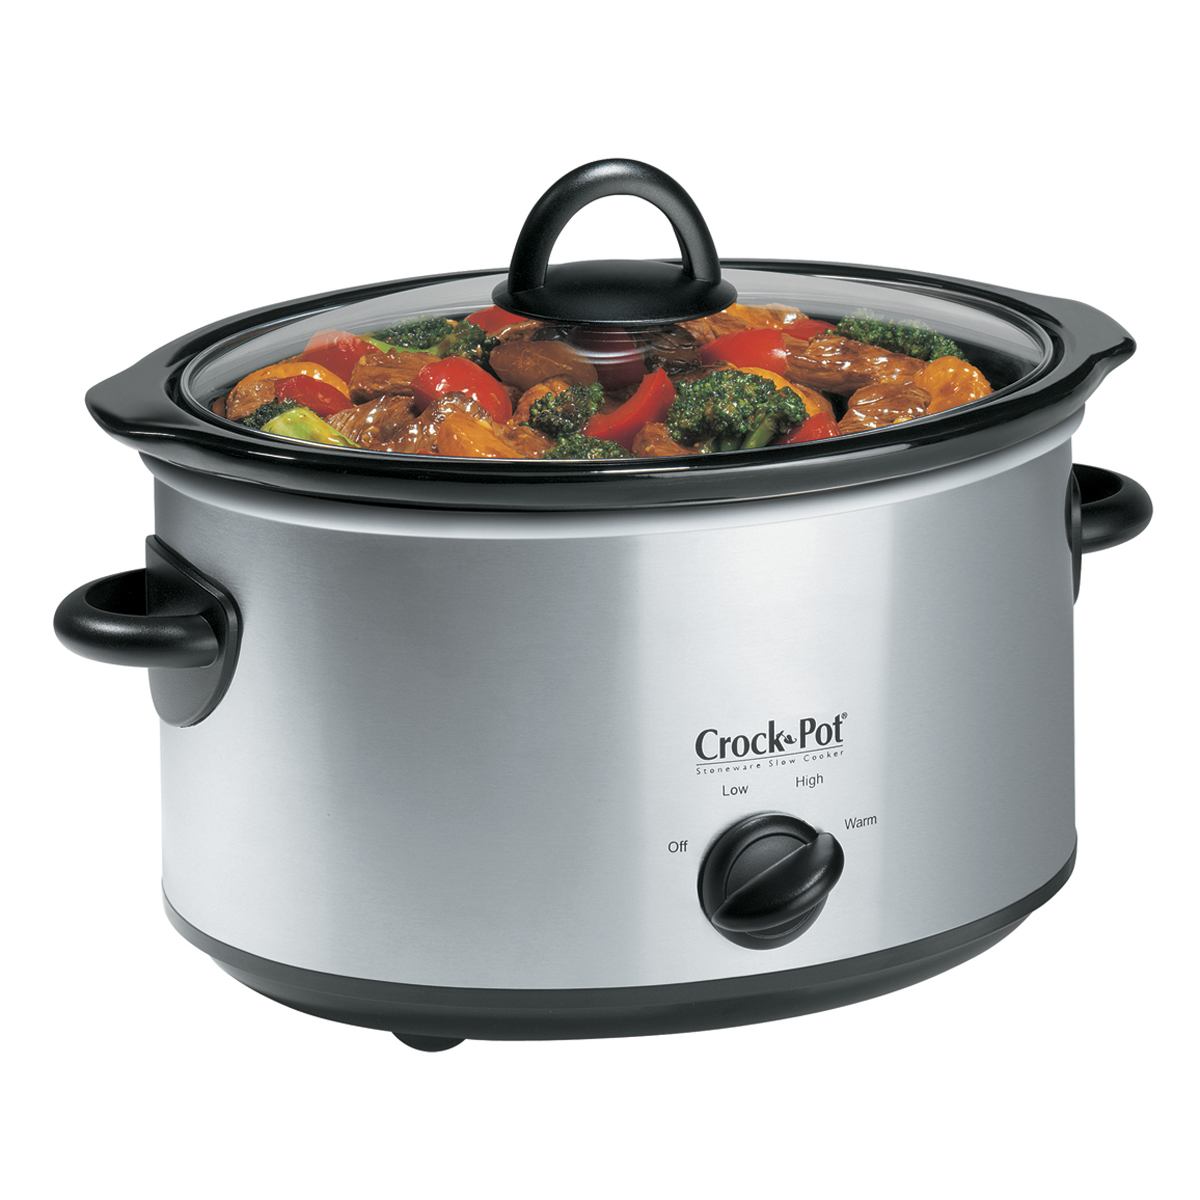 which setting is high on 3 qt manual crock pot